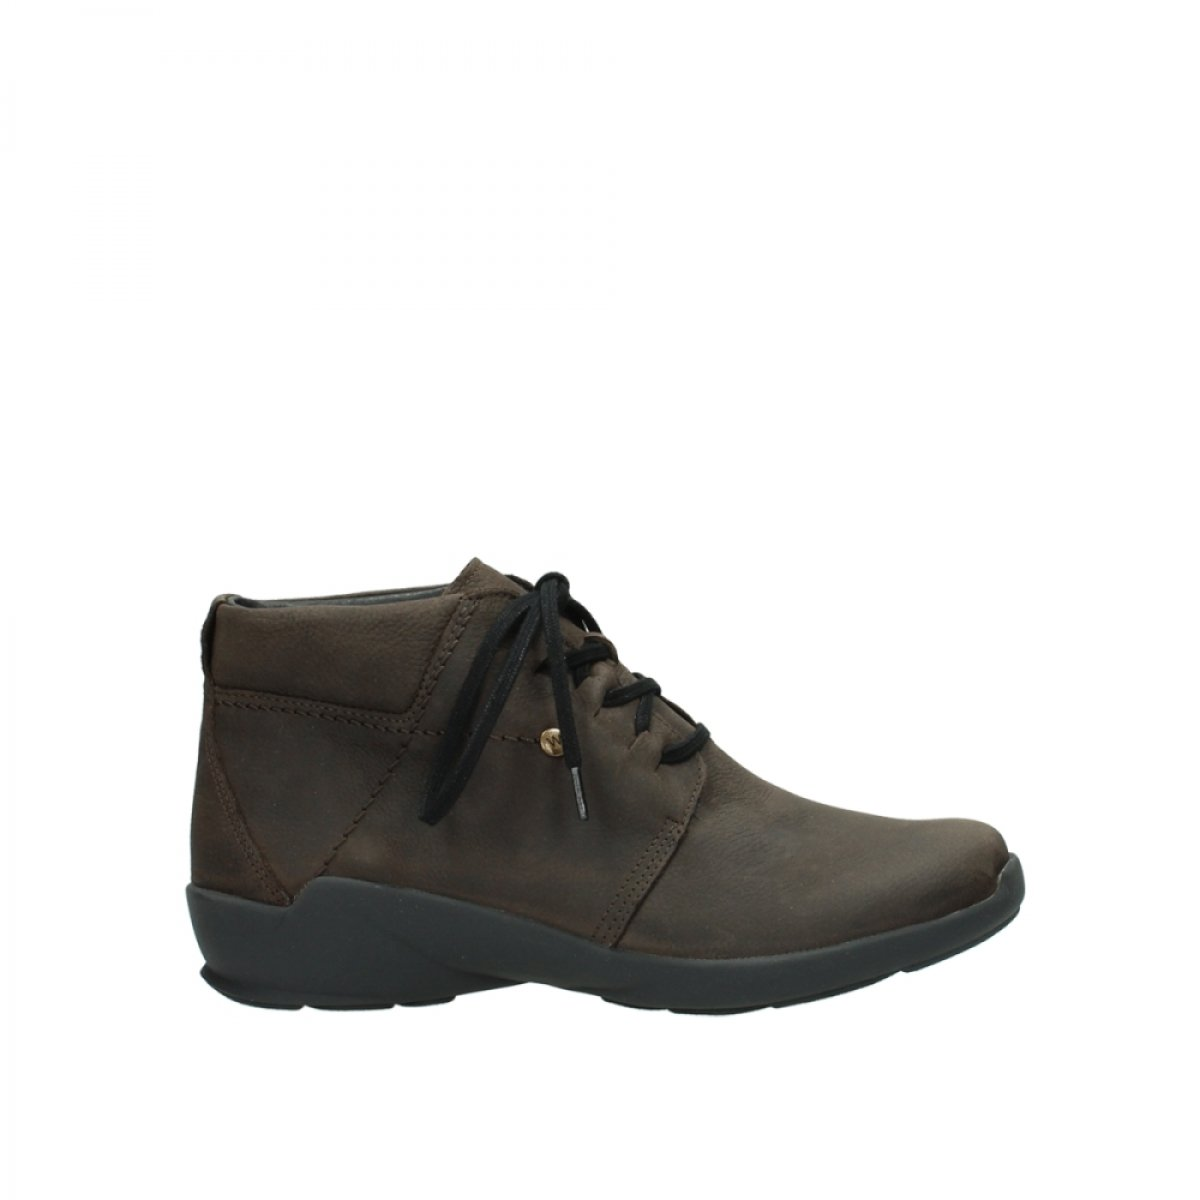 Wolky Comfort Lace up Shoes Jaca - 11302 Brown Nubuck - 38